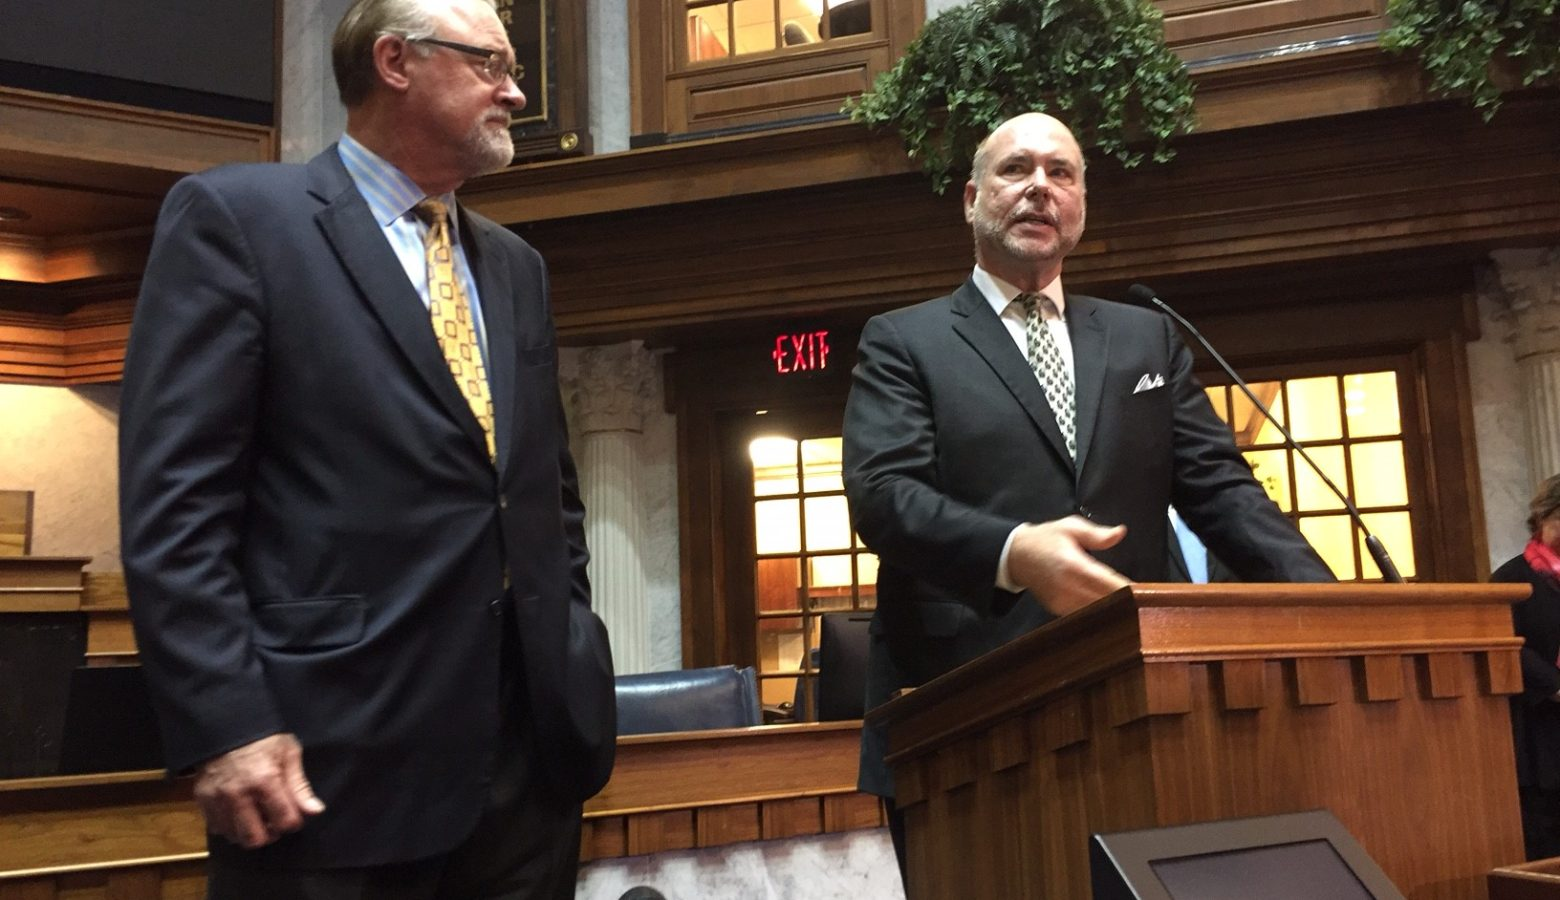 Senate President Pro Tem David Long (R-Fort Wayne), left, and House Speaker Brian Bosma (R-Indianapolis) will take the details of a road funding plan to their caucuses for approval. (Brandon Smith/IPB News)